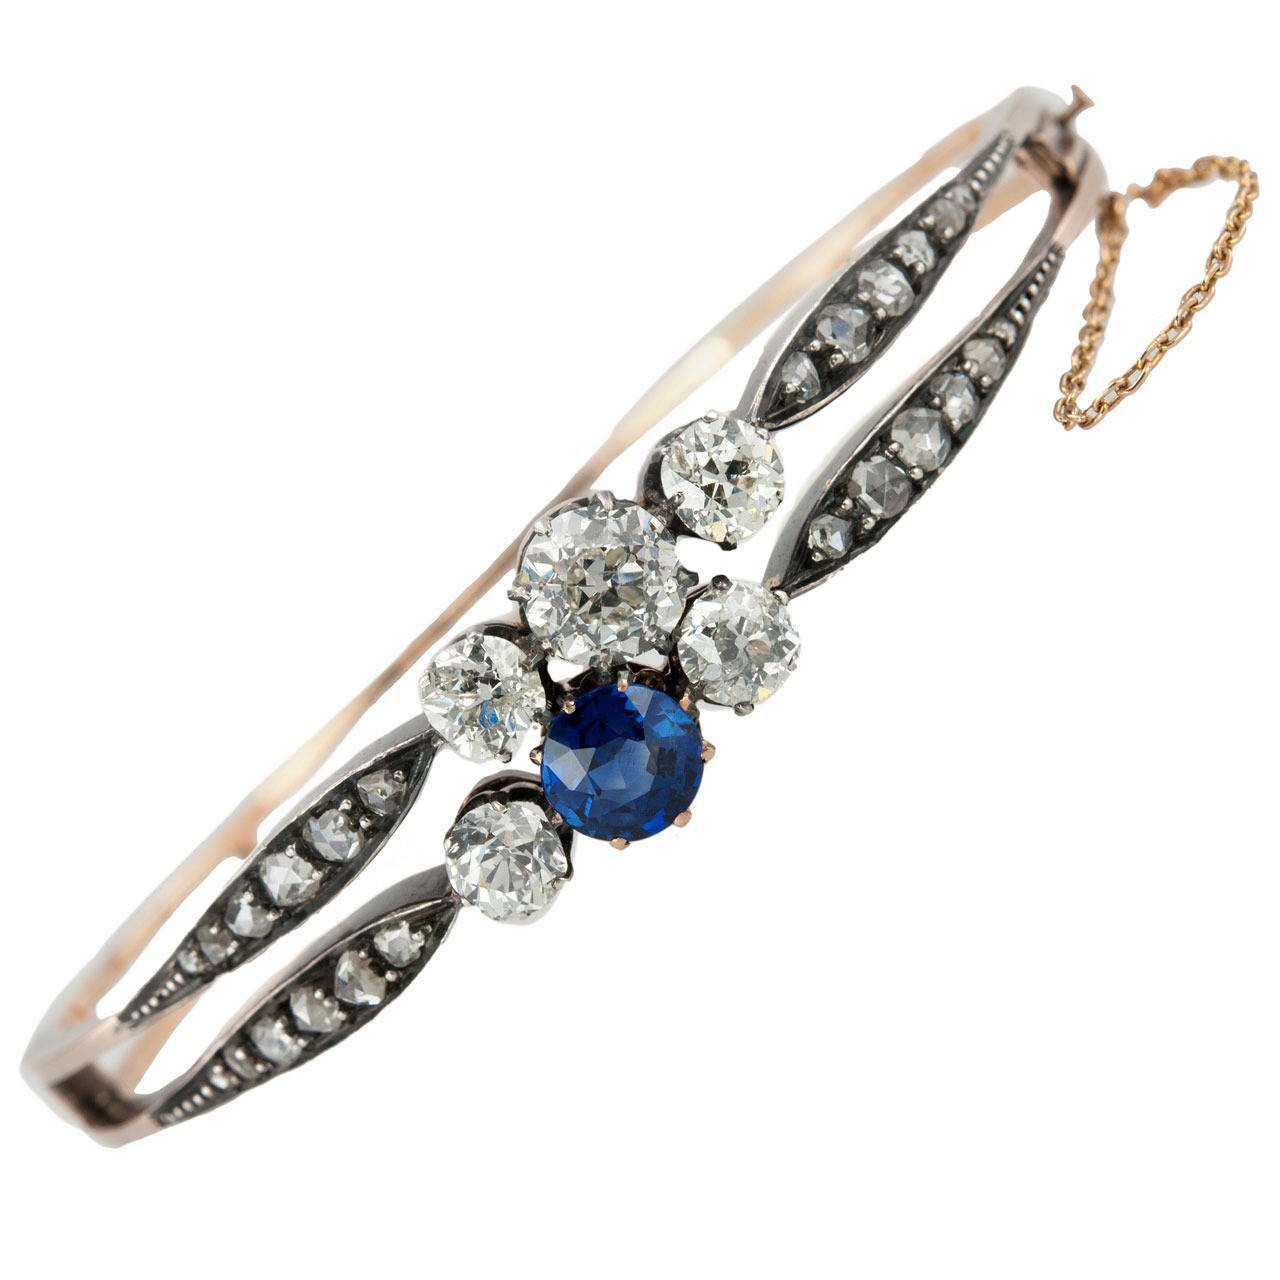 Victorian Diamond and Natural Sapphire Bangle Bracelet